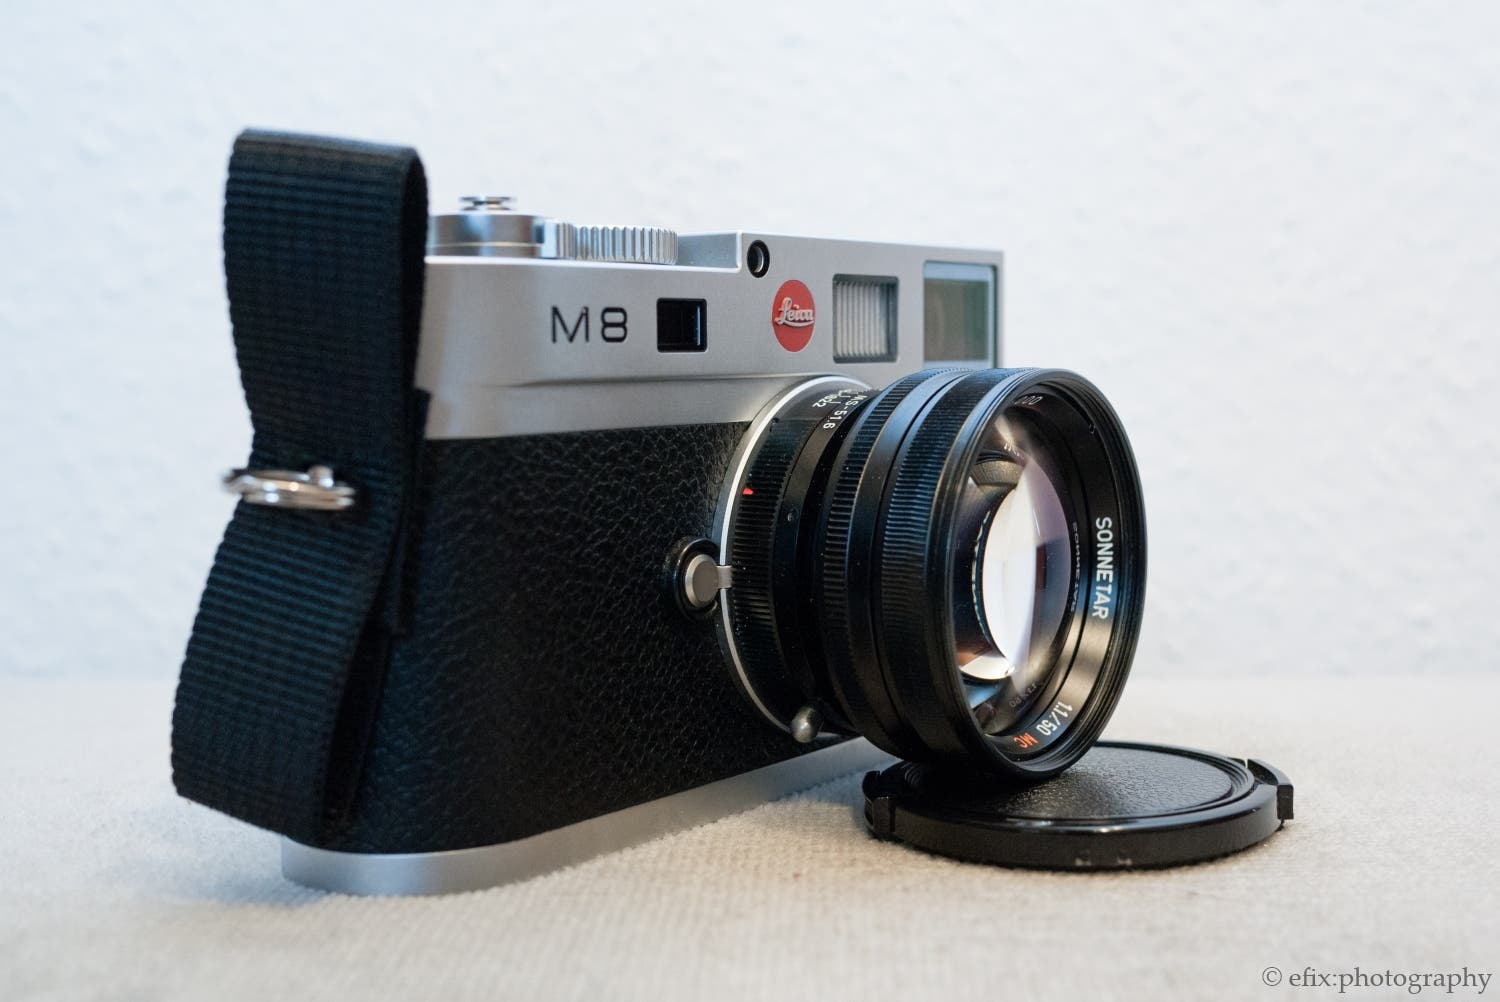 Review: MS-Optical Sonnetar 50mm f1.1 for Leica M